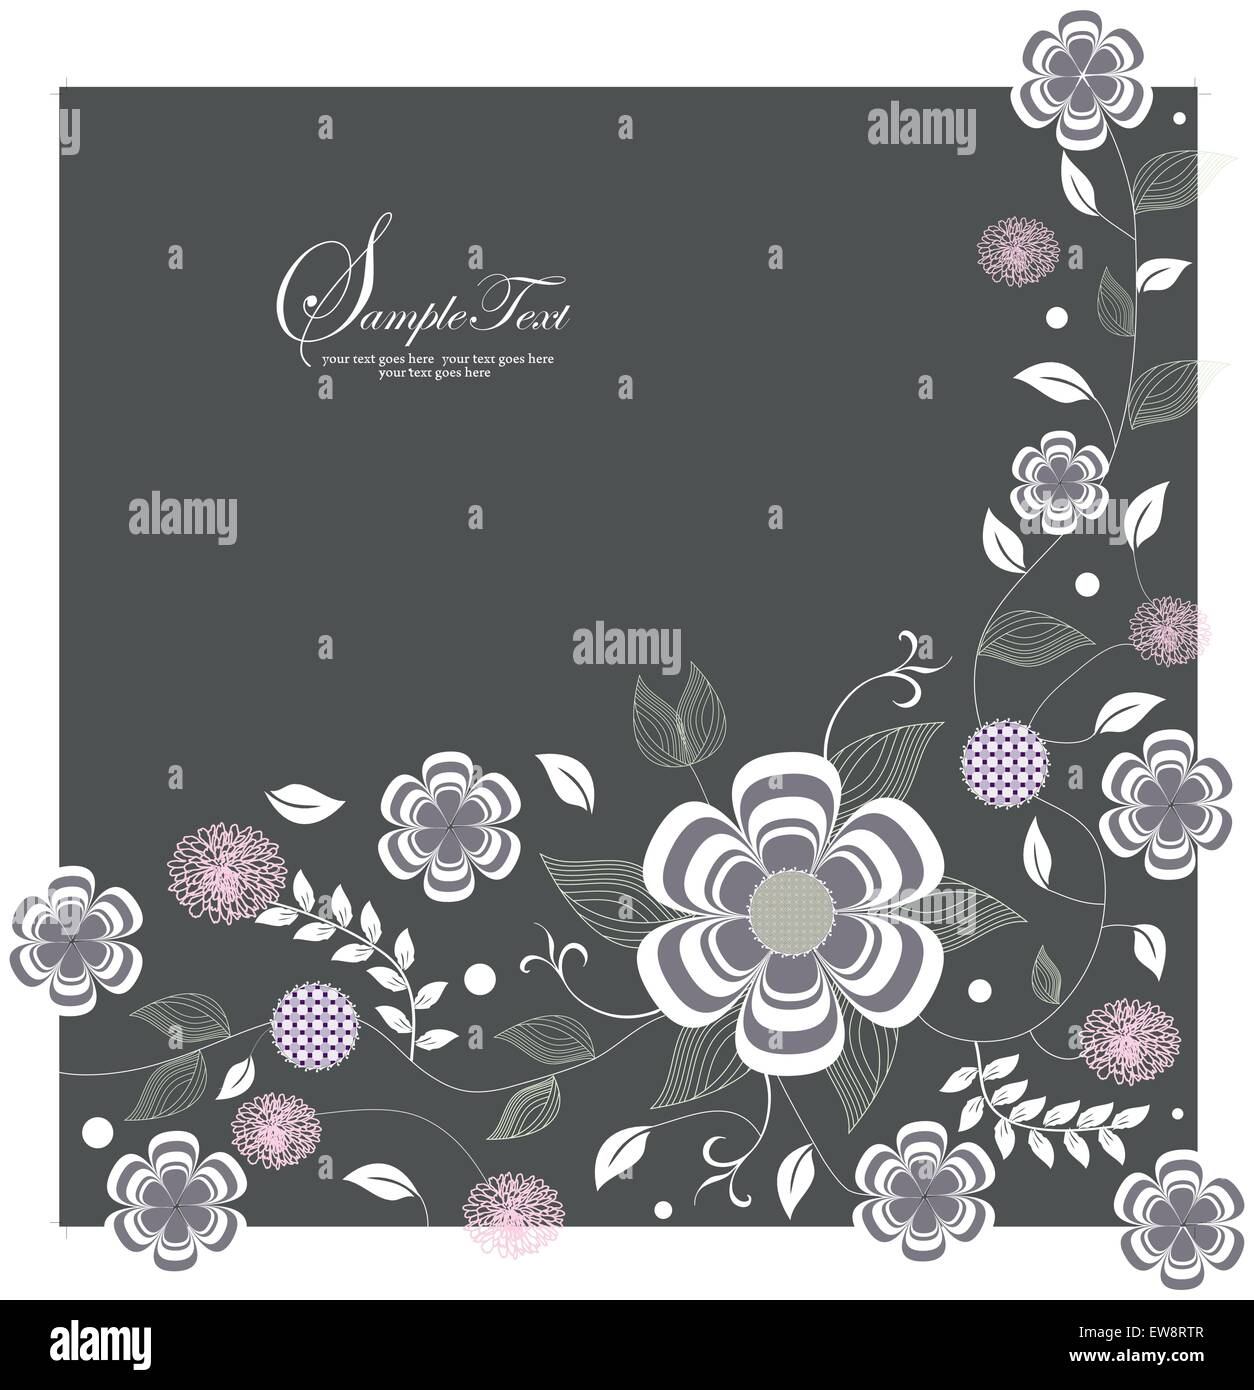 Vintage invitation card with elegant retro floral design, purple and pink flowers on gray. Vector illustration. Stock Vector